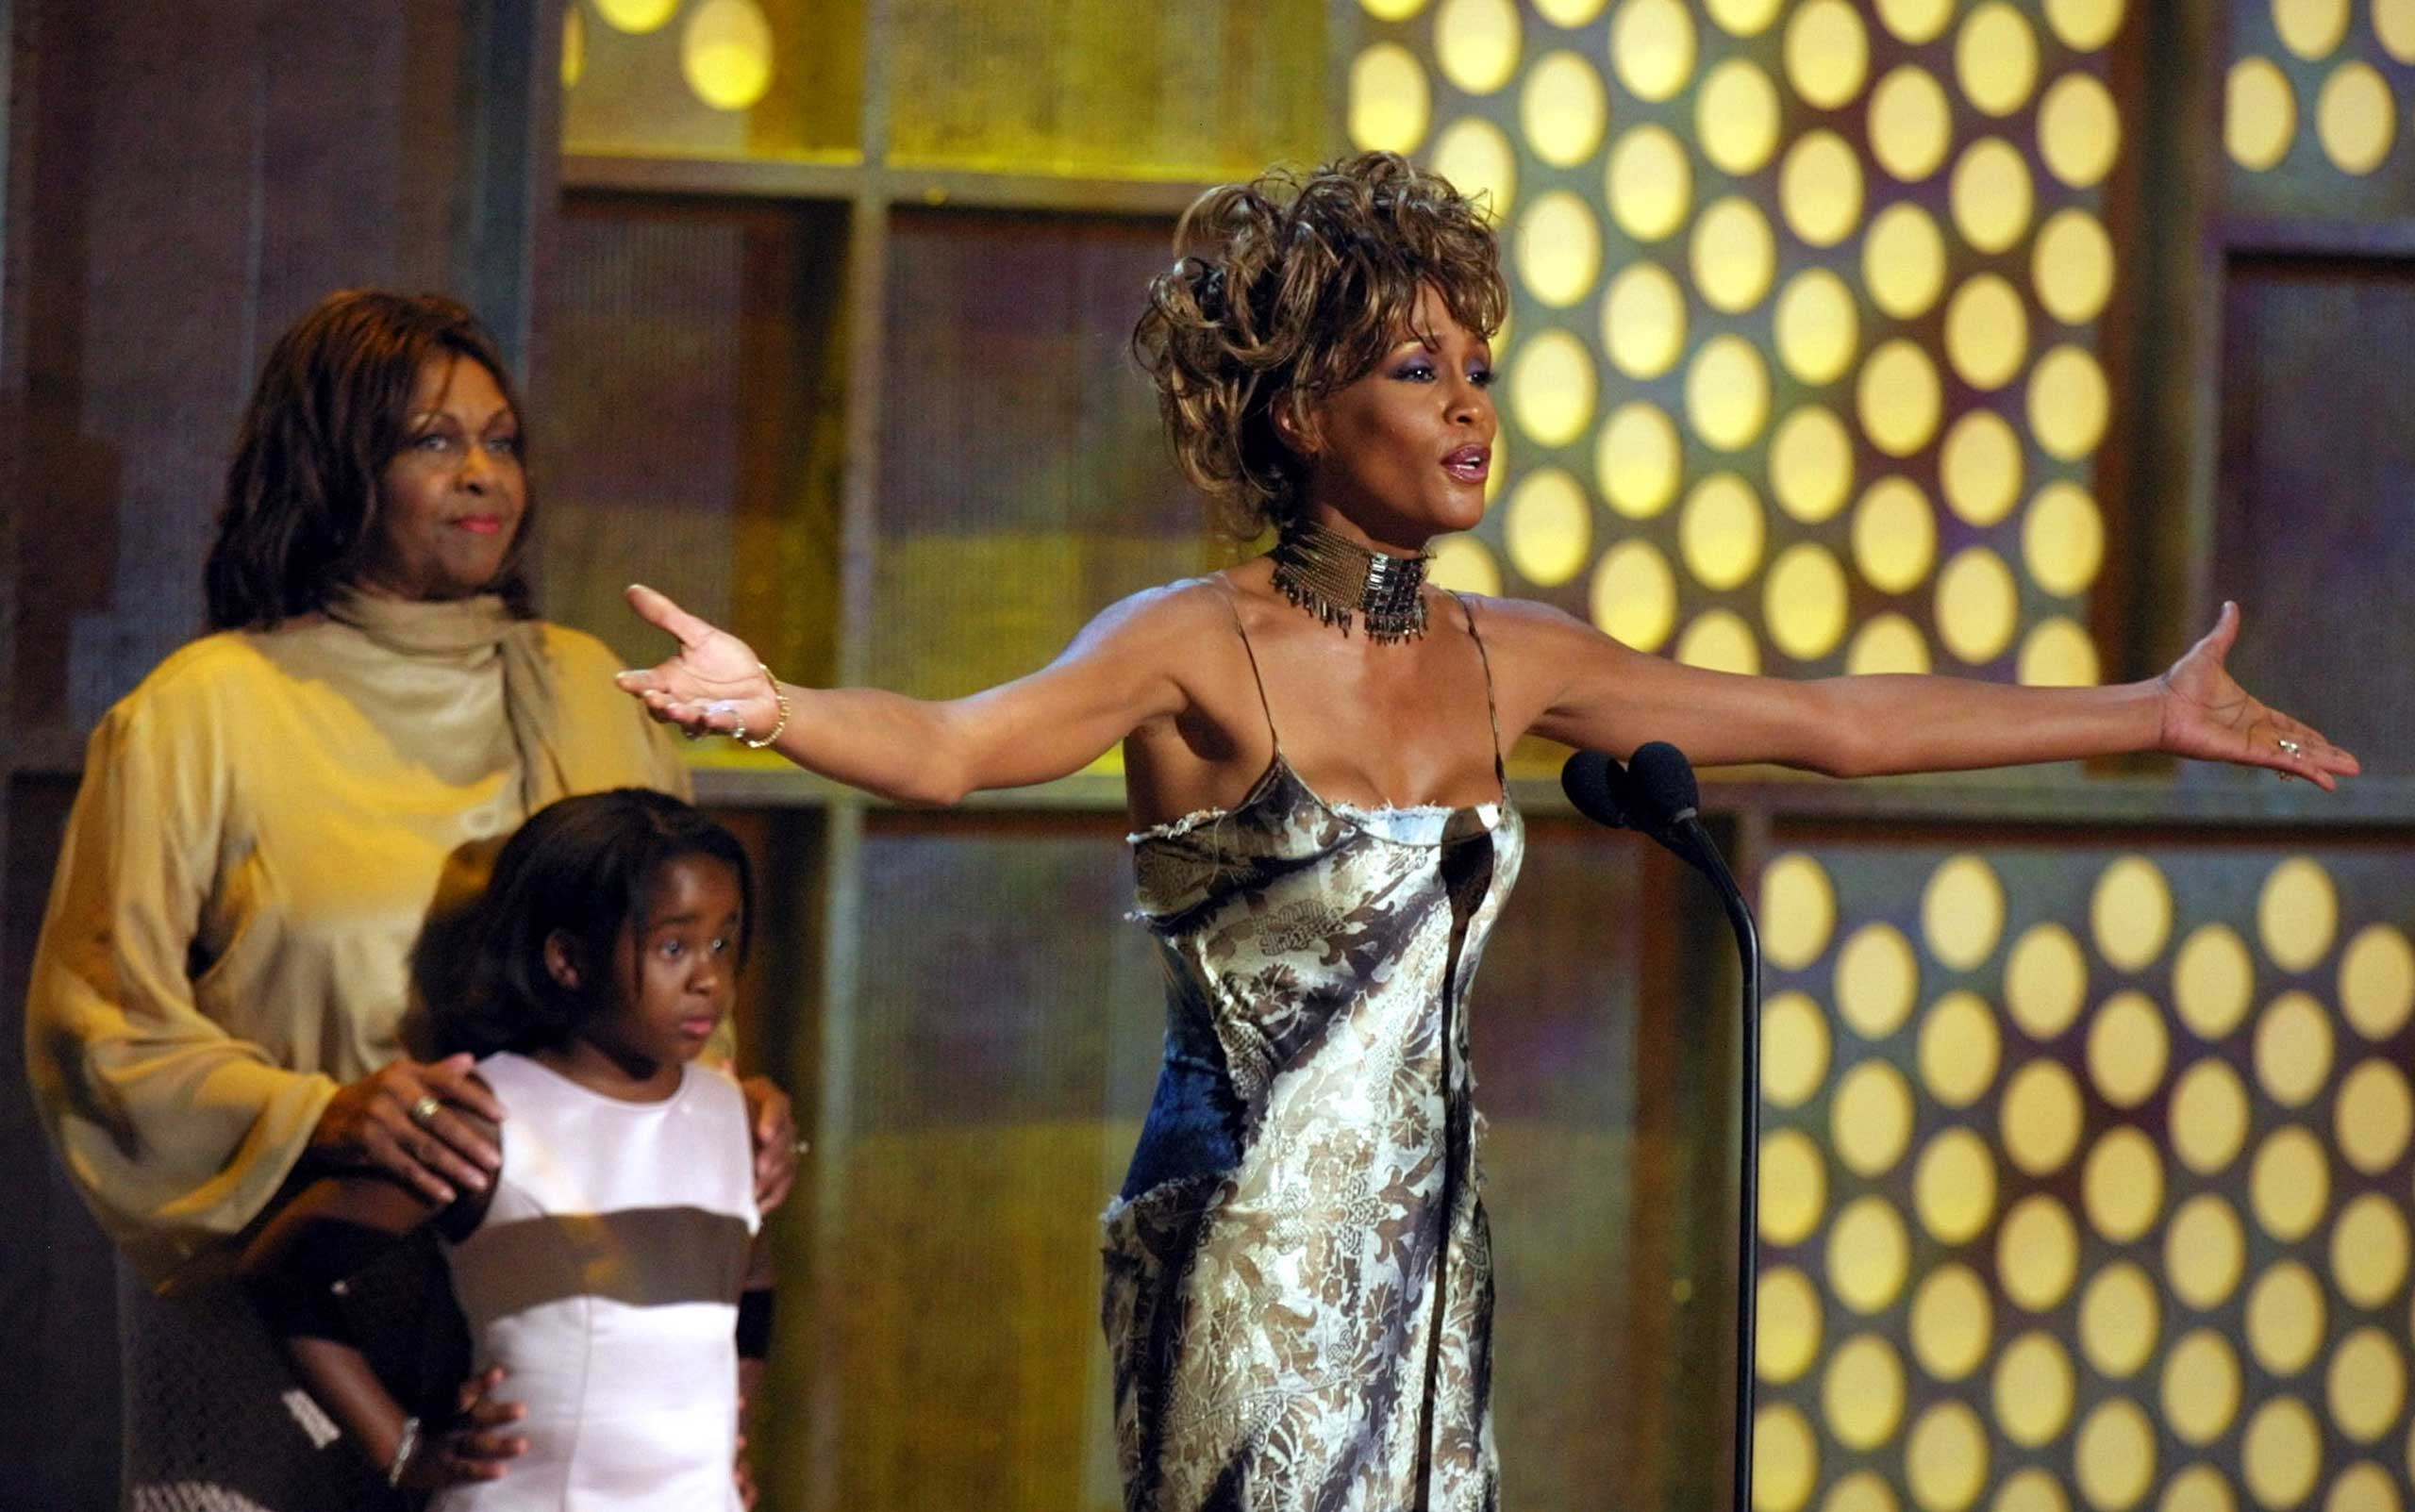 Whitney Houston accepts the Lifetime Achievement Award at the first annual Black Entertainment Television (BET) awards show at the Paris Las Vegas hotel-casino in Las Vegas on June 19, 2001.